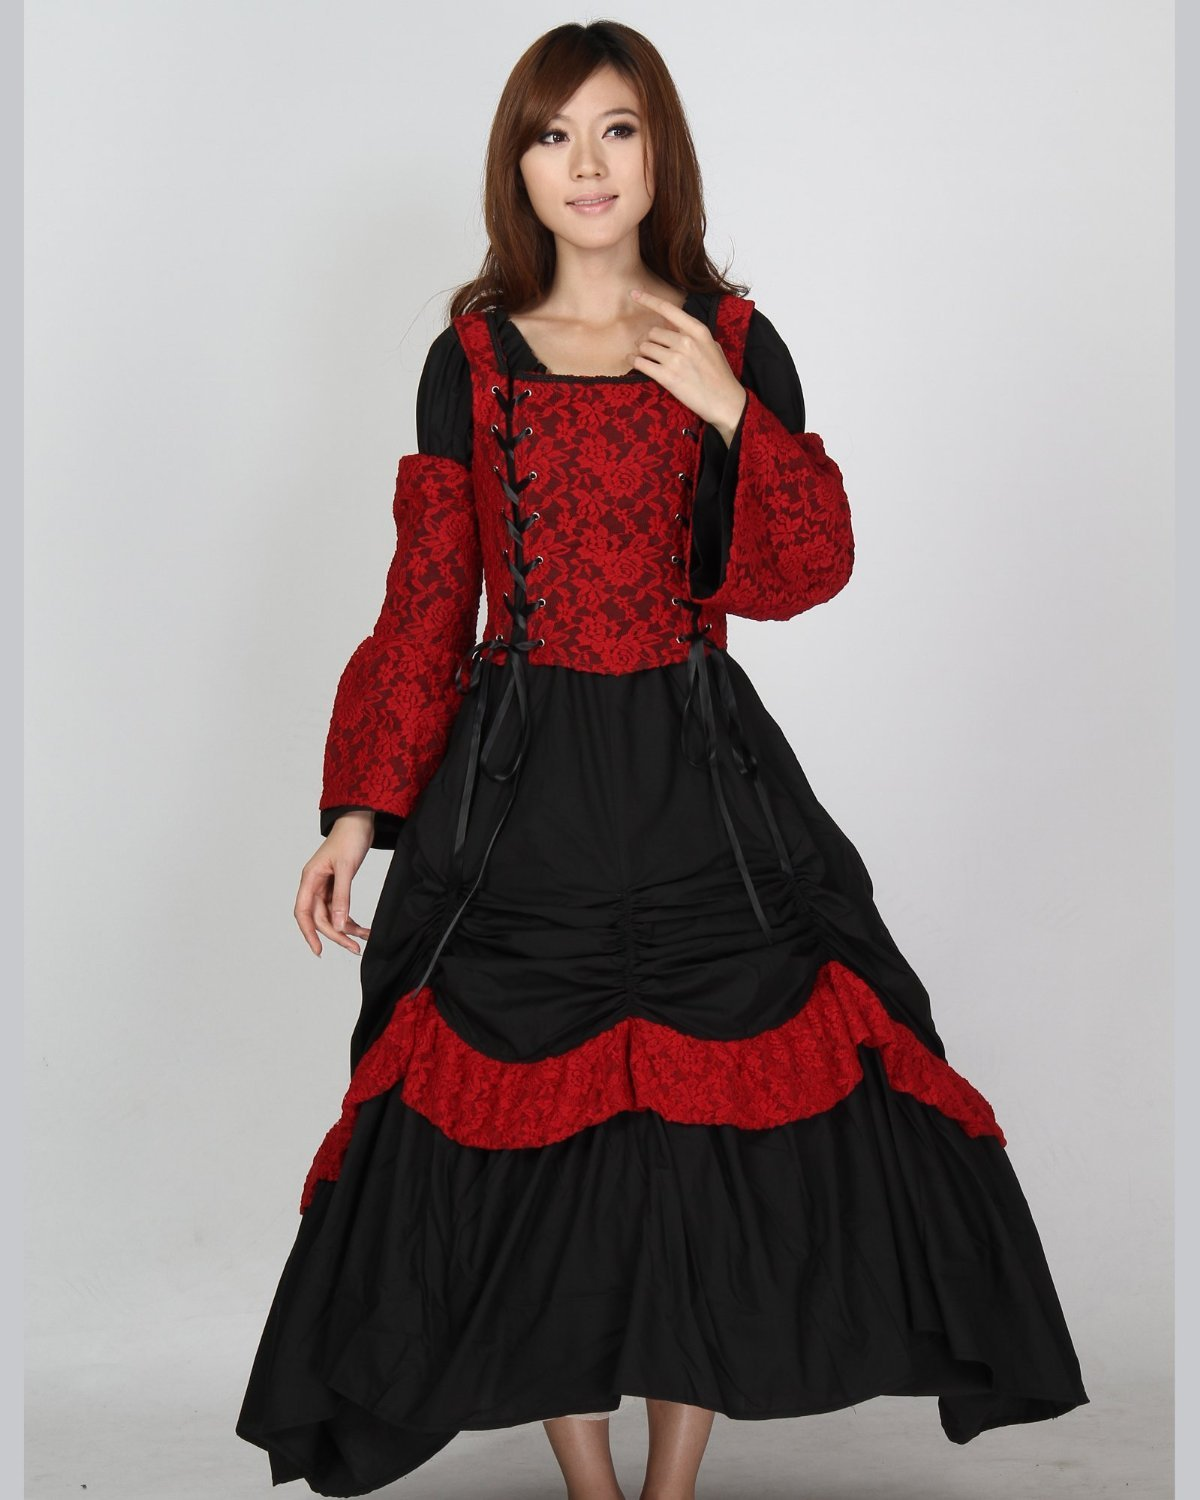 gothic corset dresses for prom